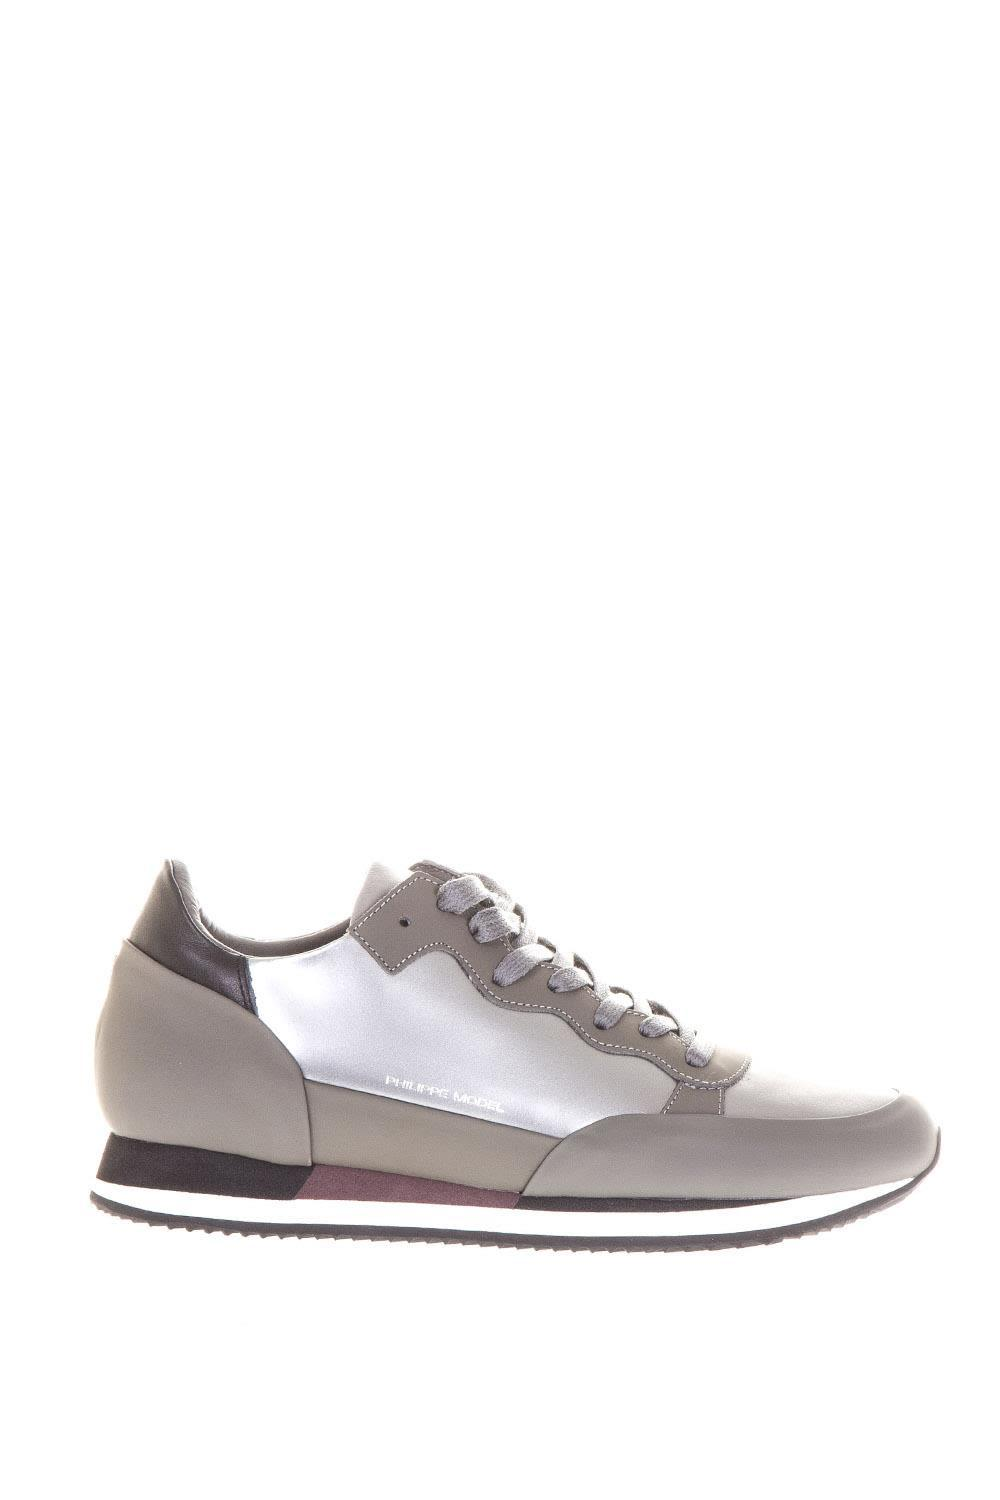 Philippe Model Leather Sneakers Paradis In Argent